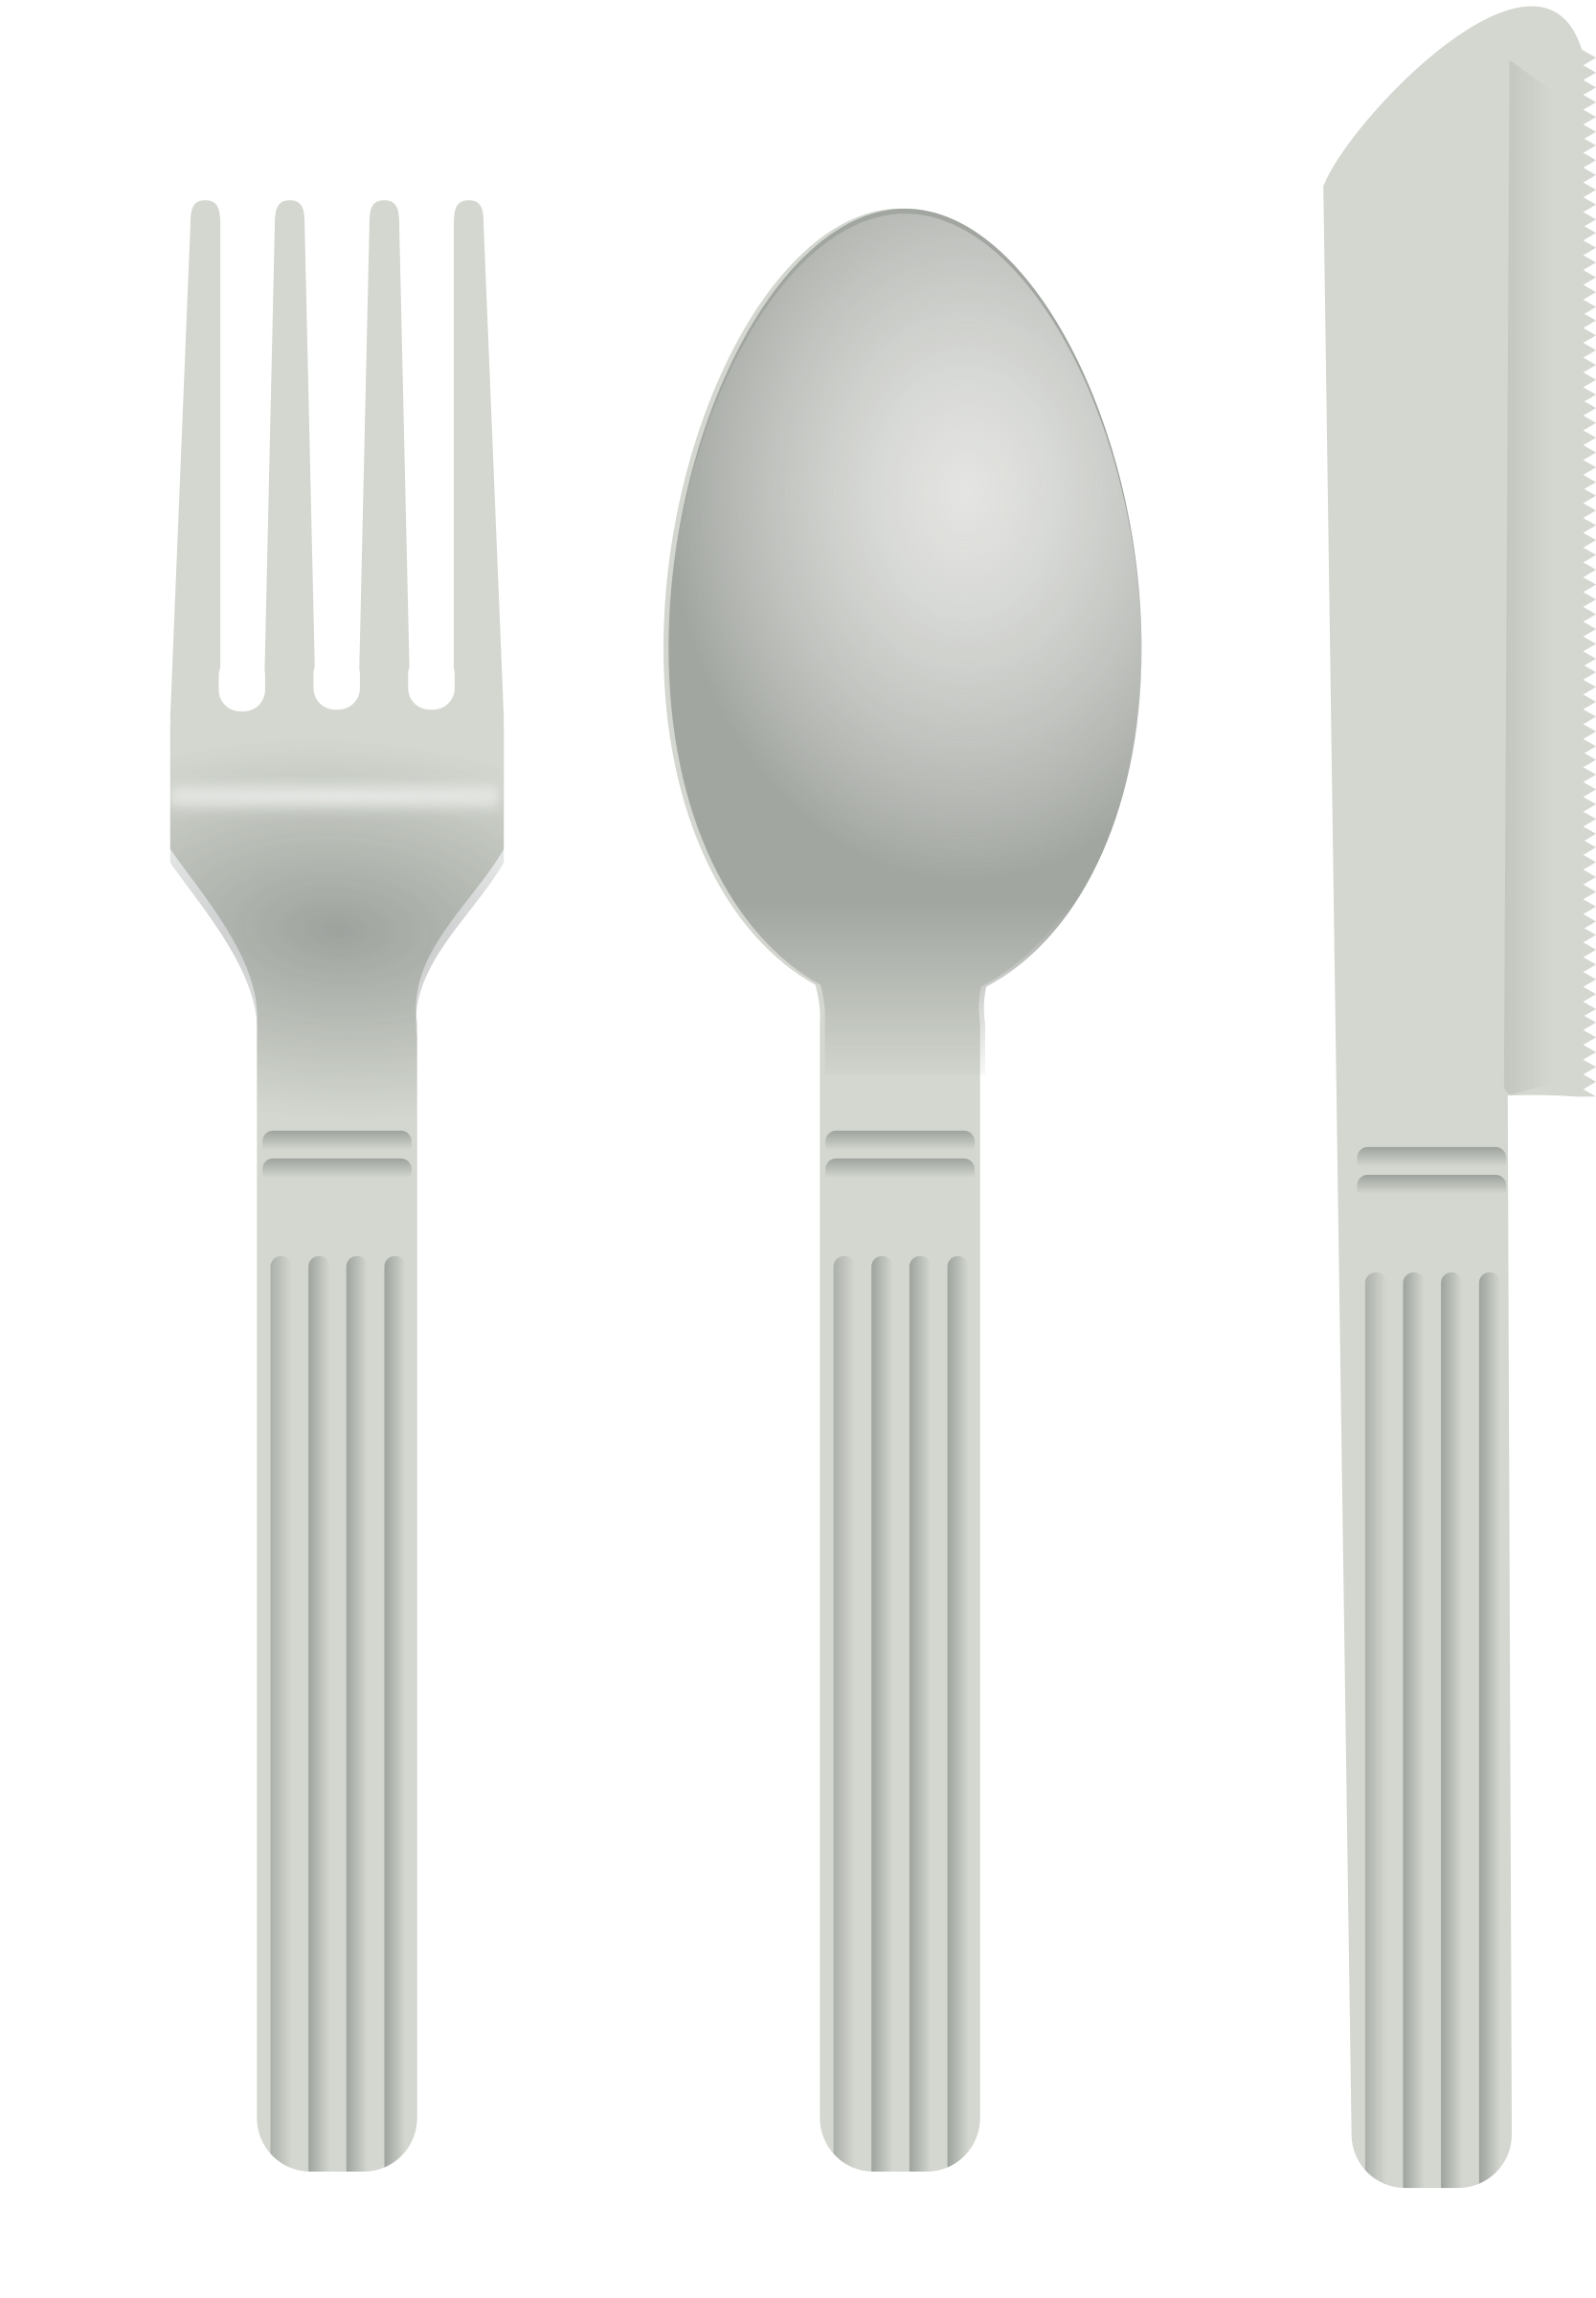 fork and spoon by rg1024